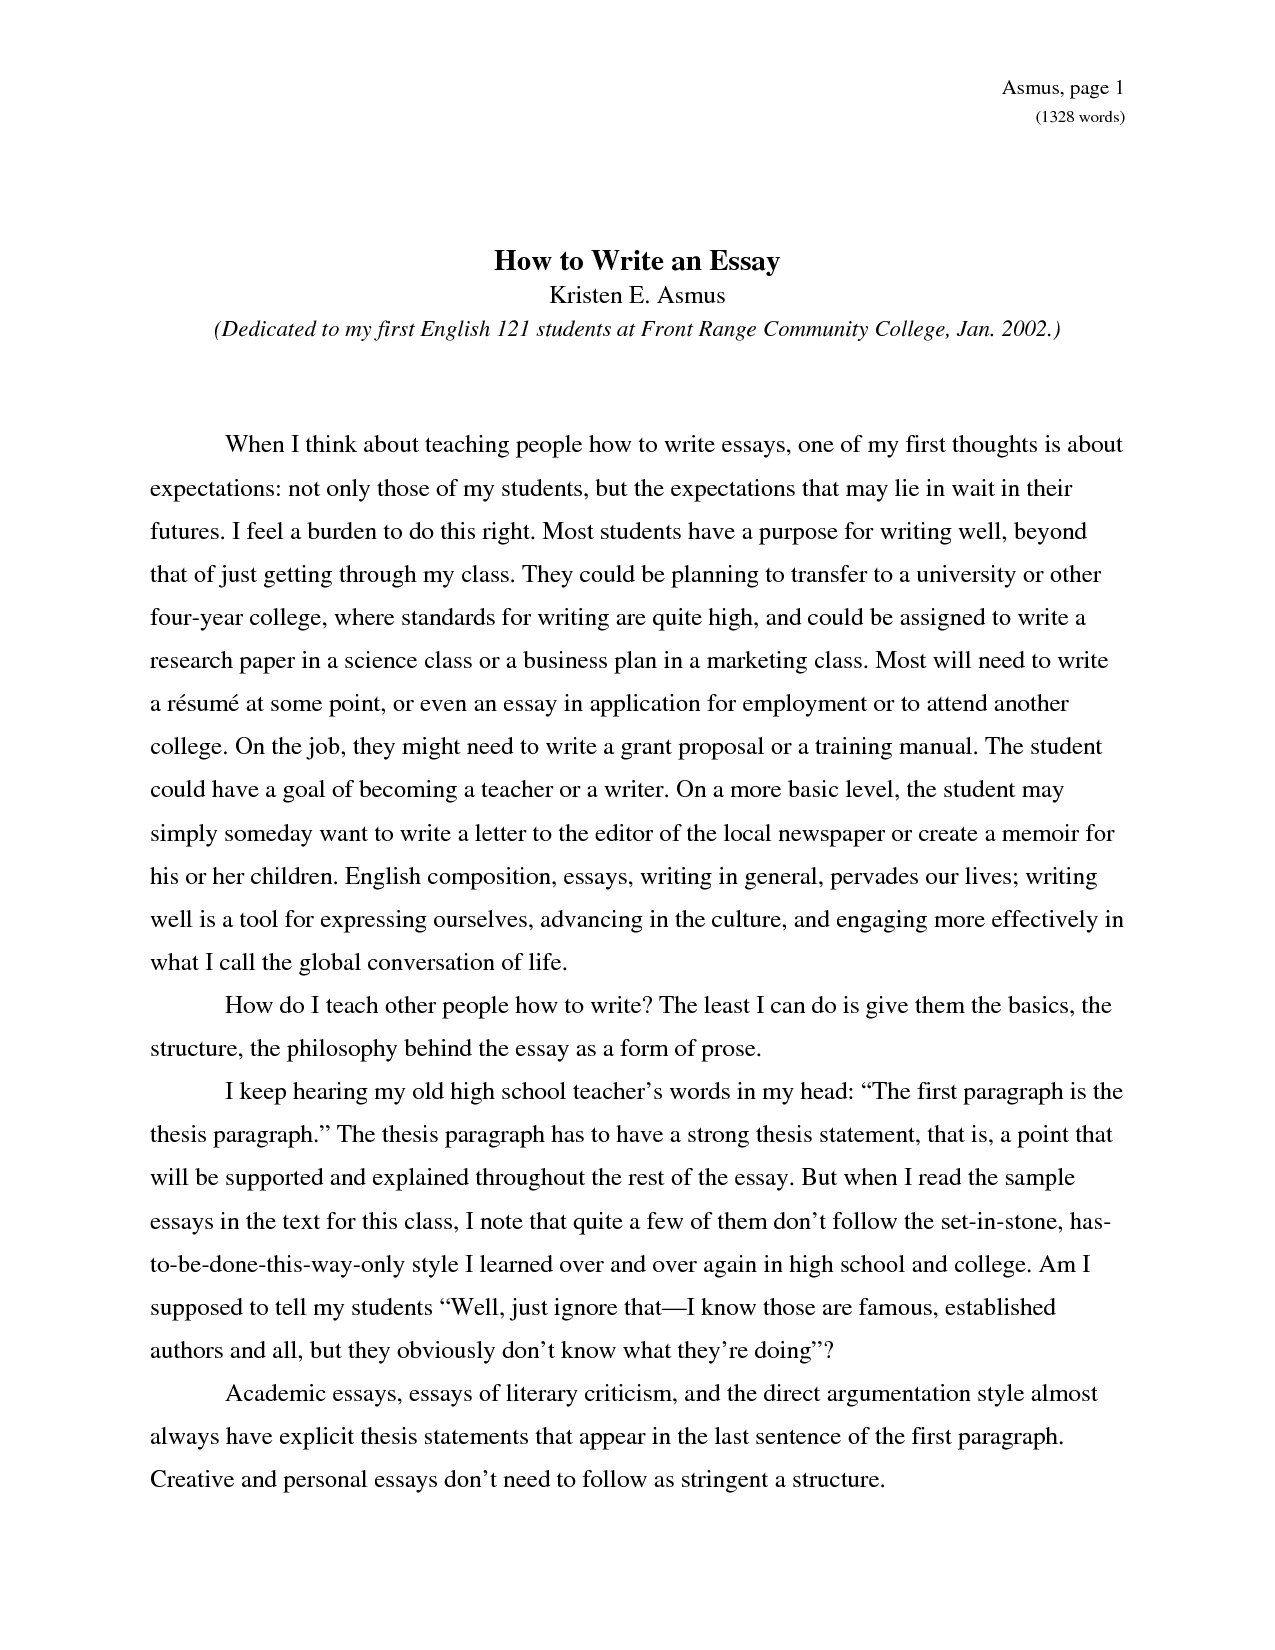 an introduction to the creative essay on the topic of justice Essay lab essay writing tips  indicate your topic when you write an introduction,  be creative an introduction should be structured and follow a format,.